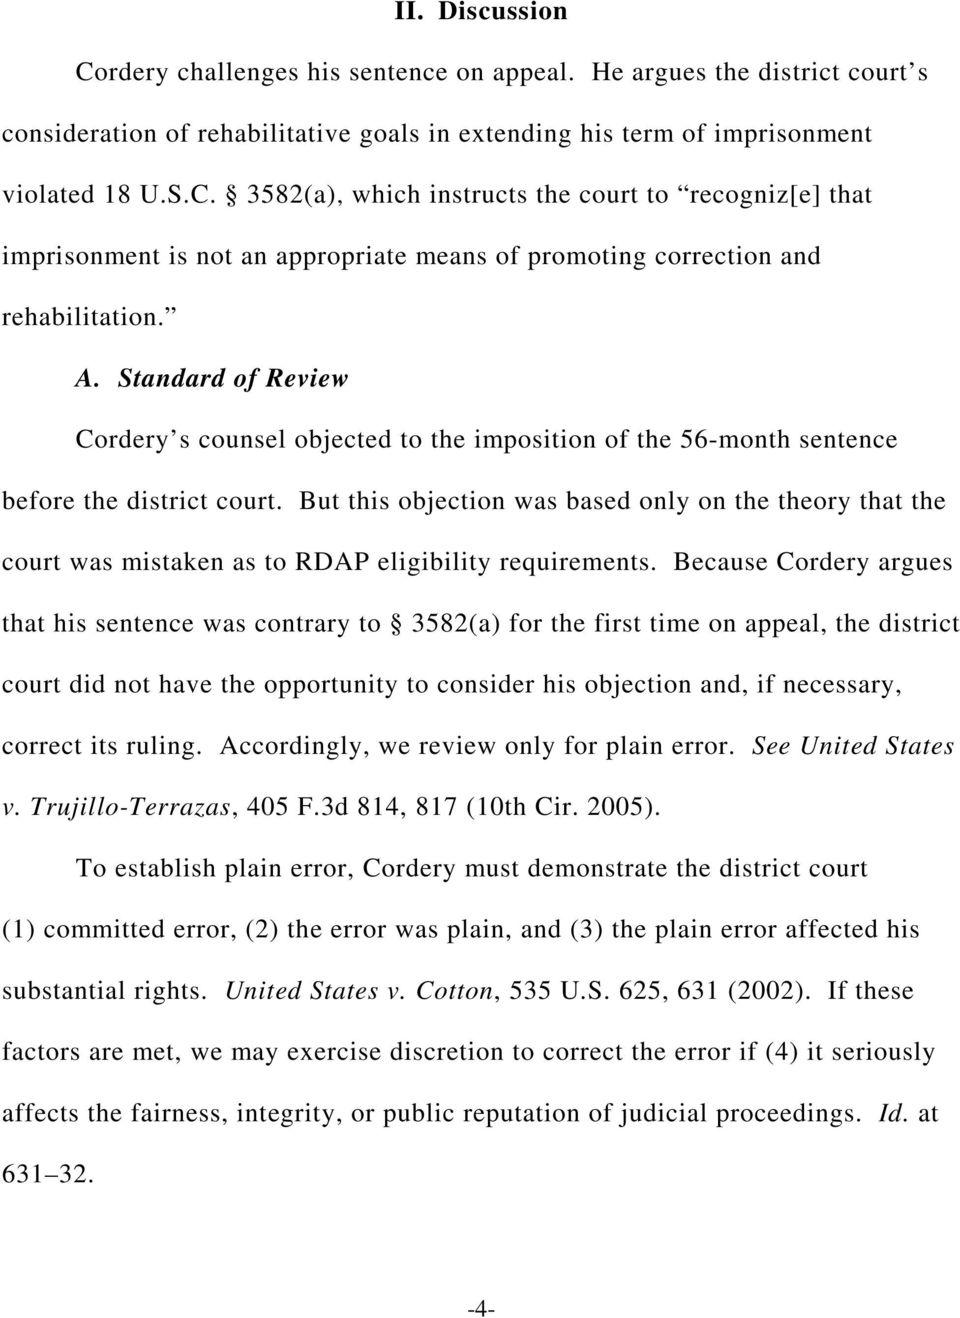 But this objection was based only on the theory that the court was mistaken as to RDAP eligibility requirements.